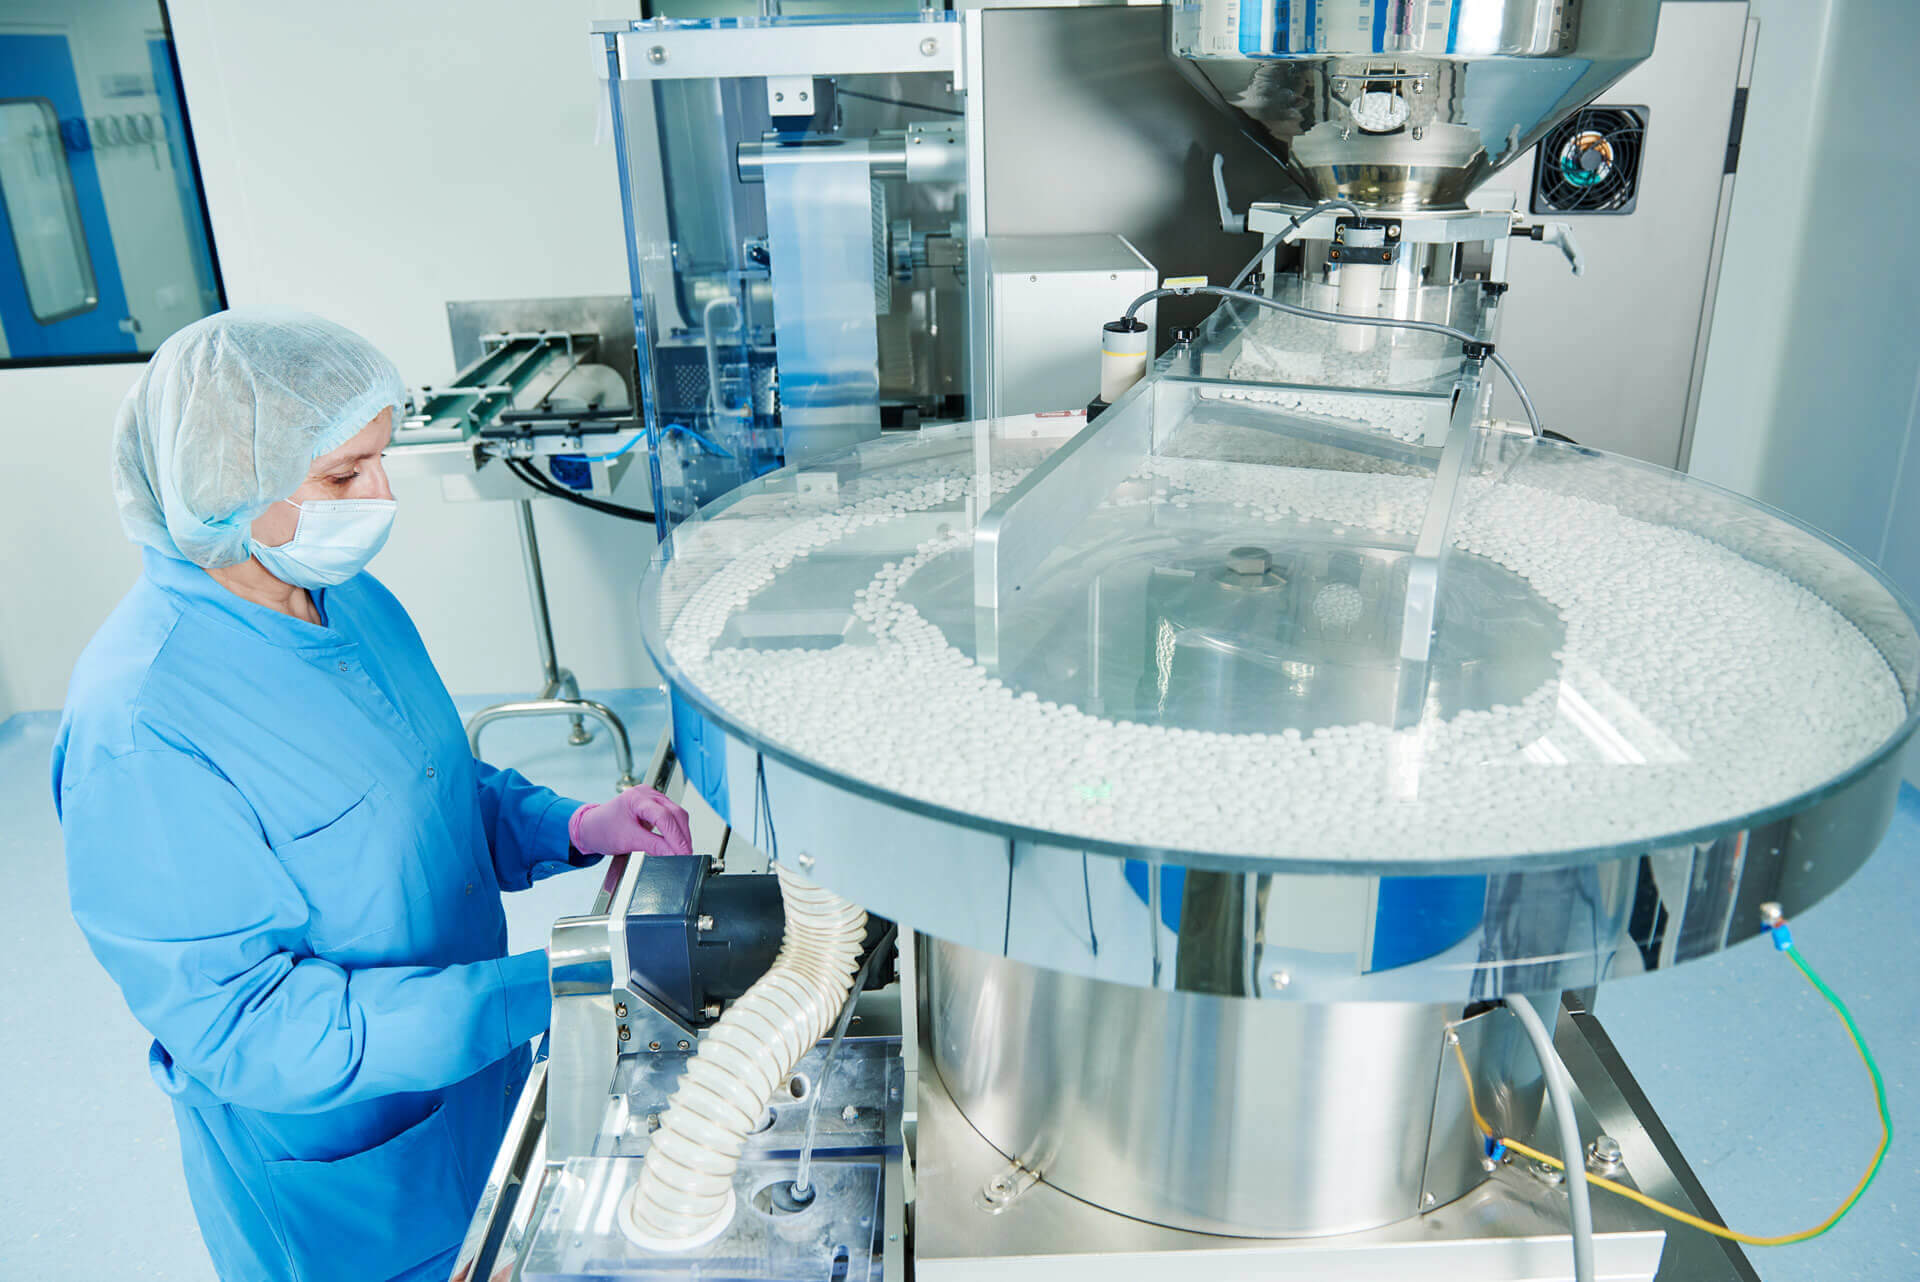 Person in blue gown working at pharmaceutical equipment in cleanroom.